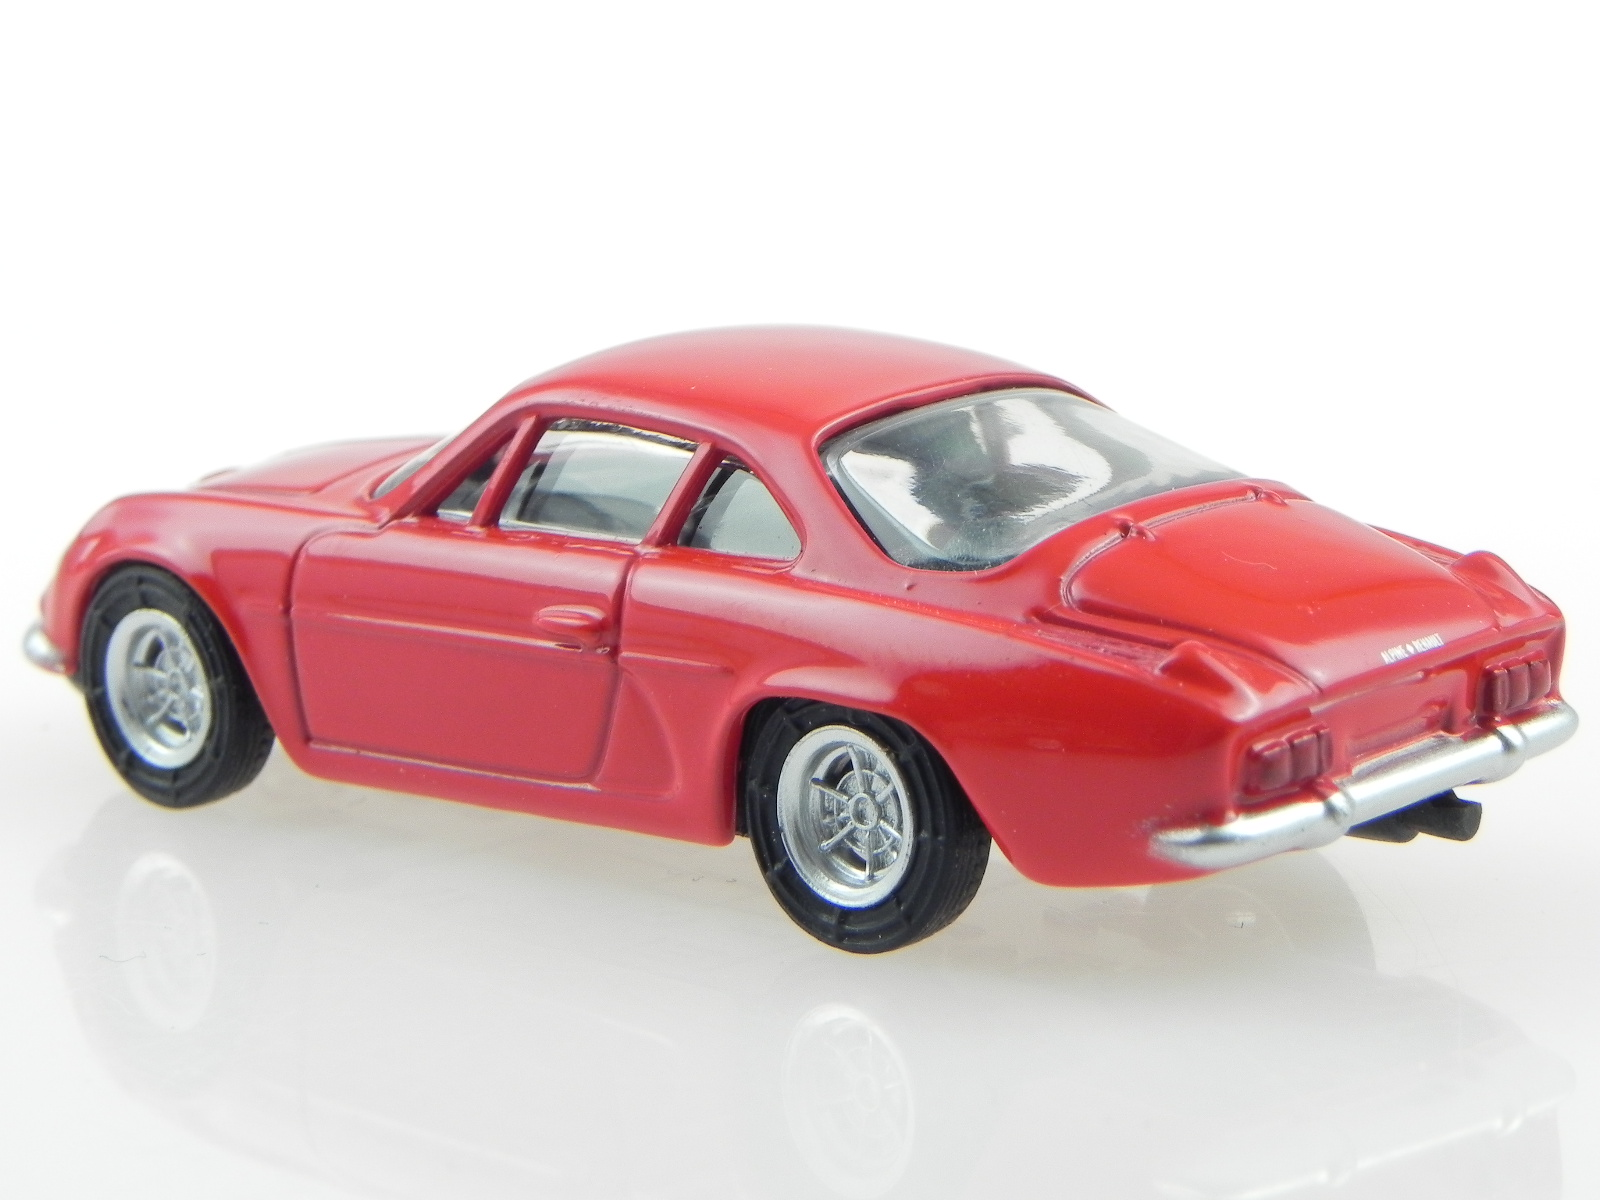 renault alpine a110 rot modellauto 319225 norev 3inch ebay. Black Bedroom Furniture Sets. Home Design Ideas